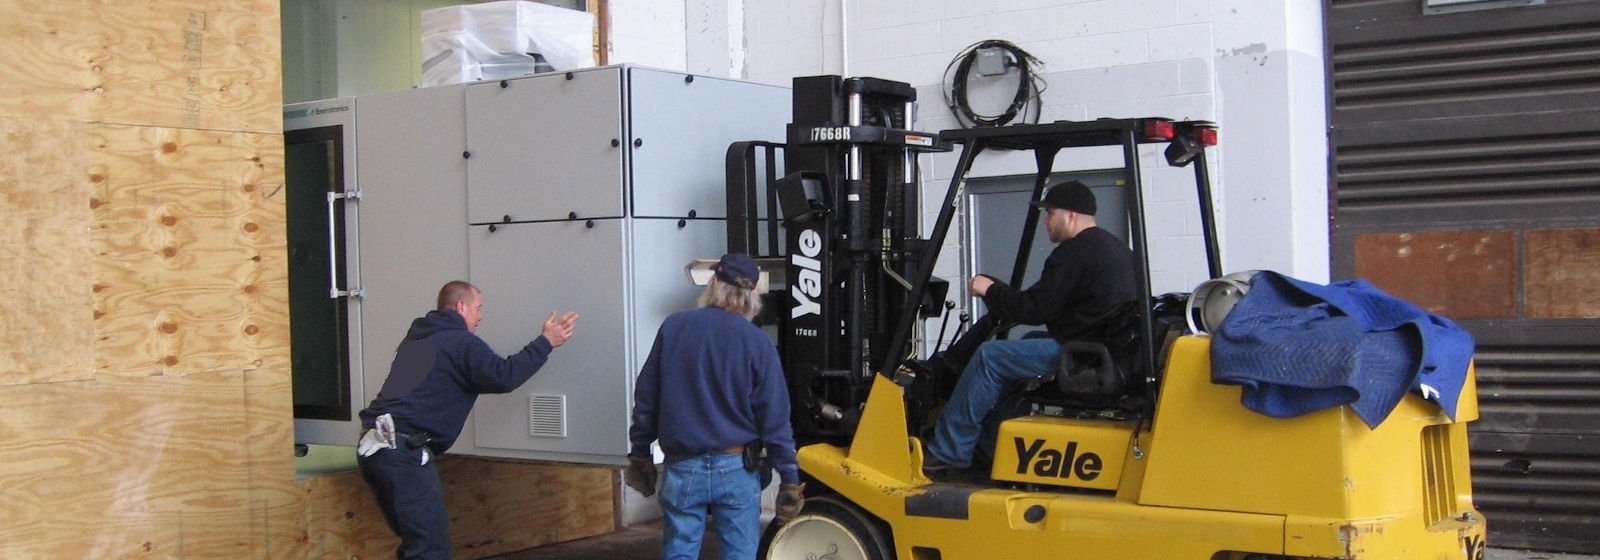 Champagne Logistics shipping team guiding forklift